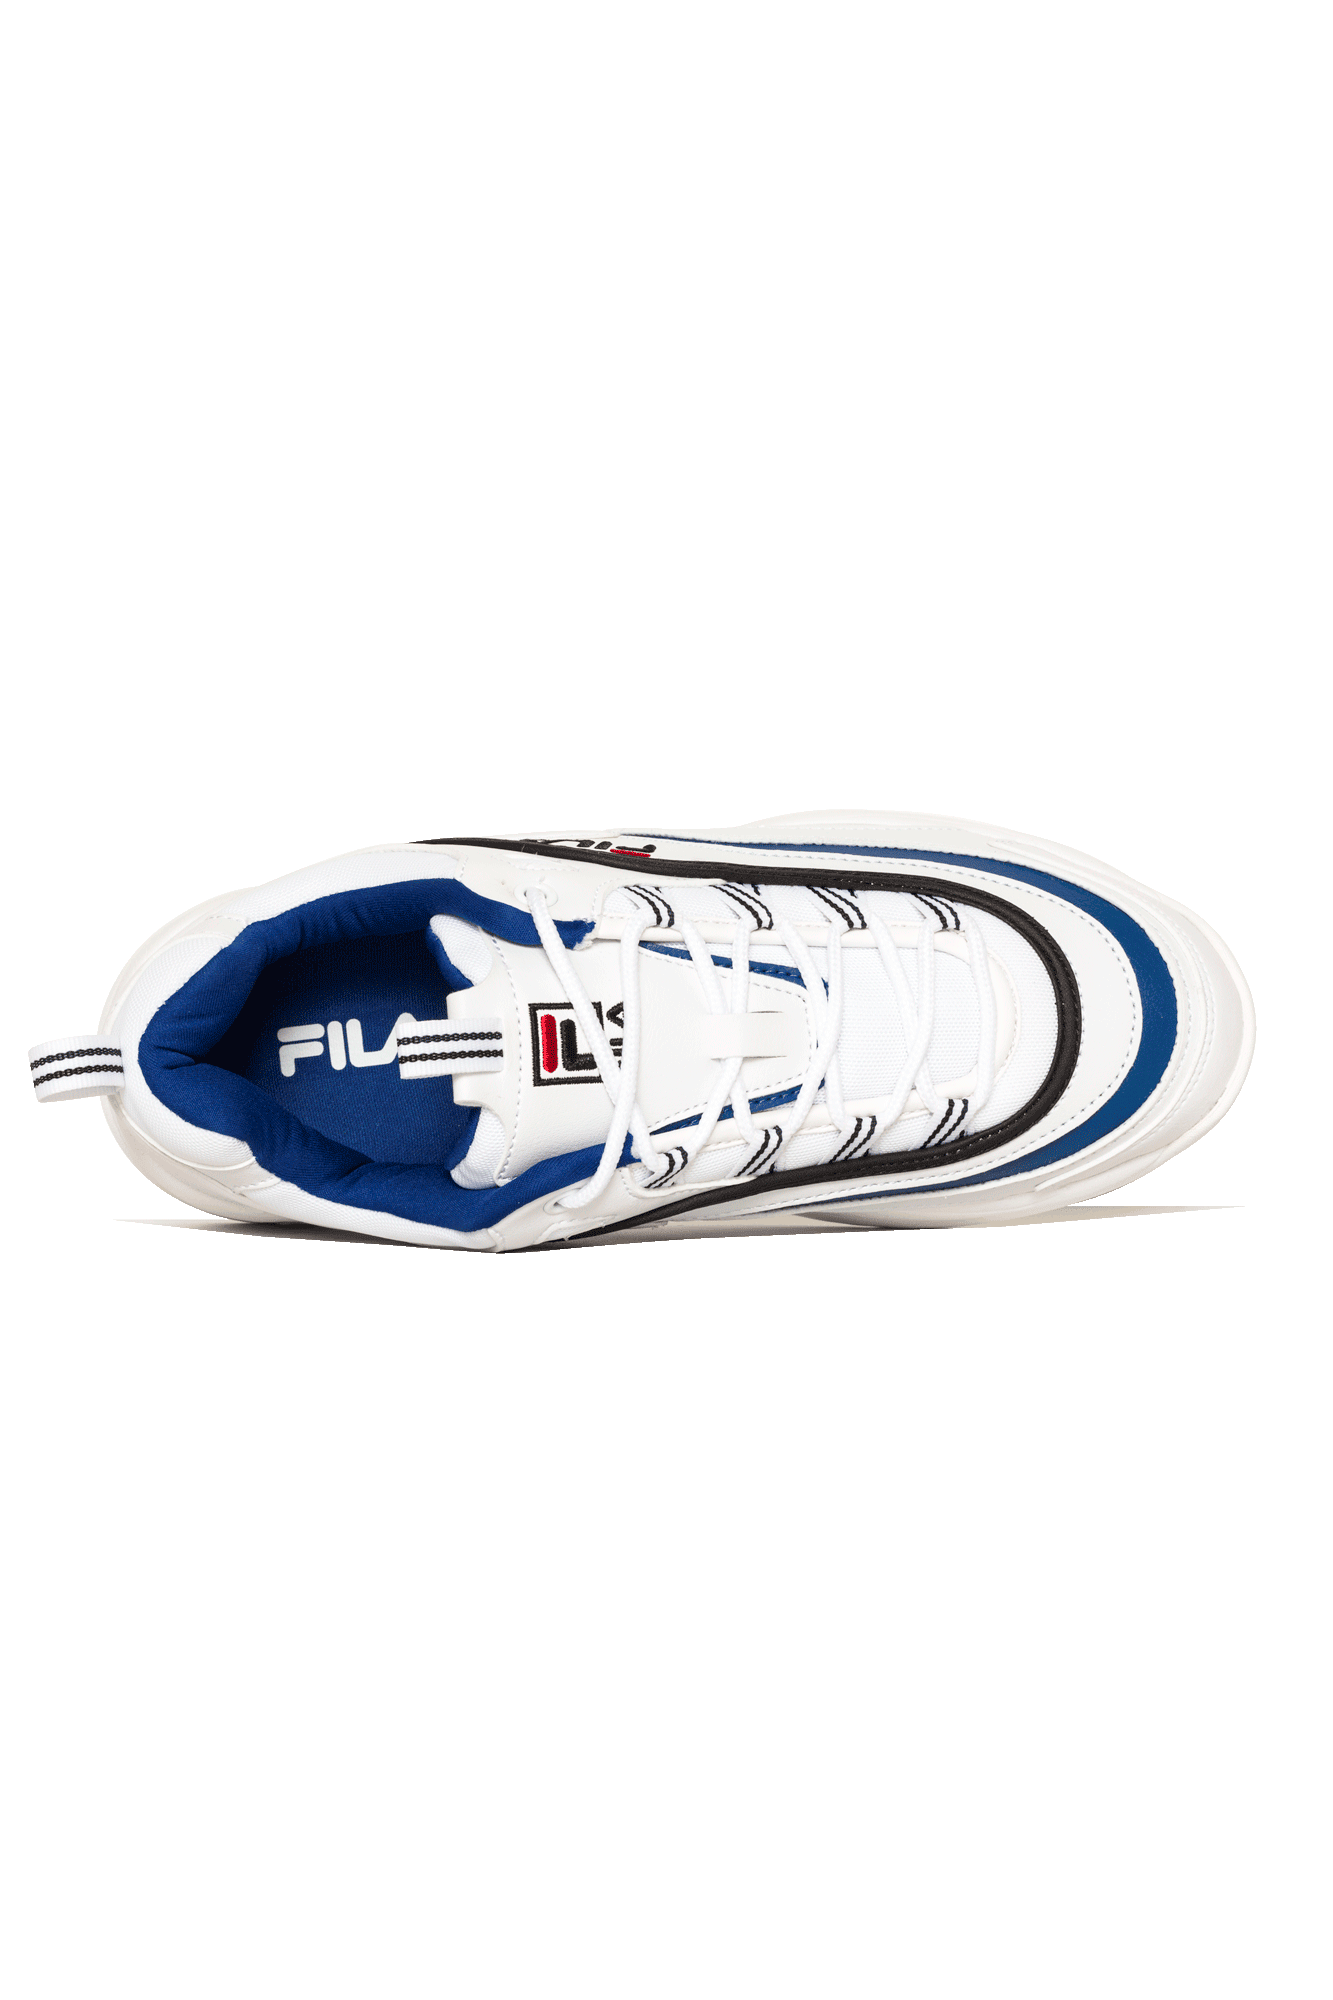 Fila Sneakers Ray Low Bianco 1010561#000#01U#7,5 - One Block Down